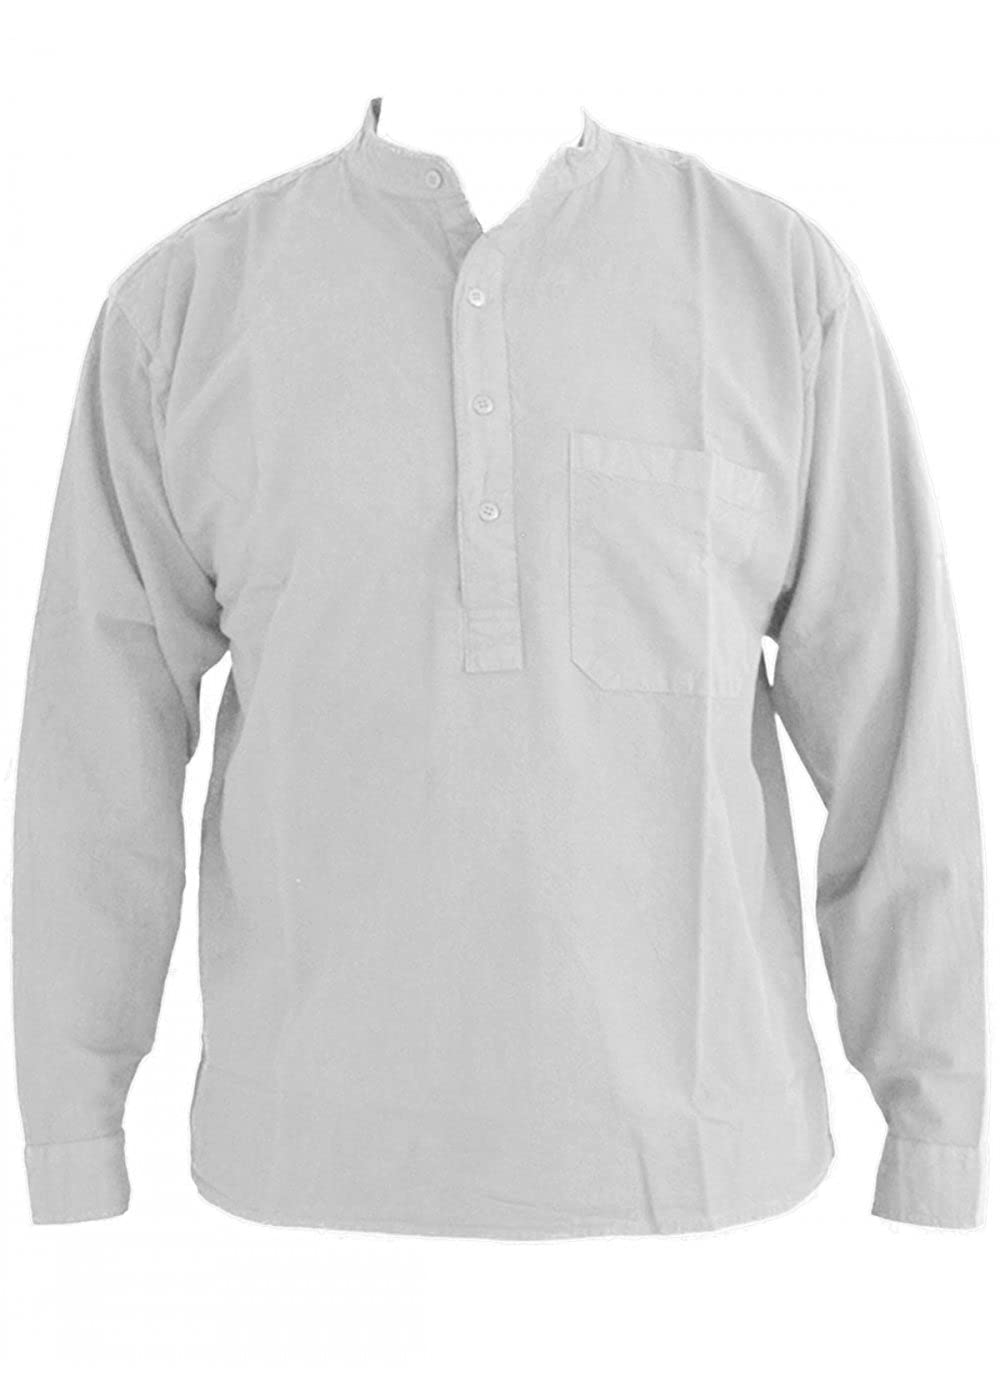 1920s Style Men's Shirts | Peaky Blinders Shirts and Collars White Grandad Collarless Shirt Cotton Sizes Small to 2XL £23.99 AT vintagedancer.com